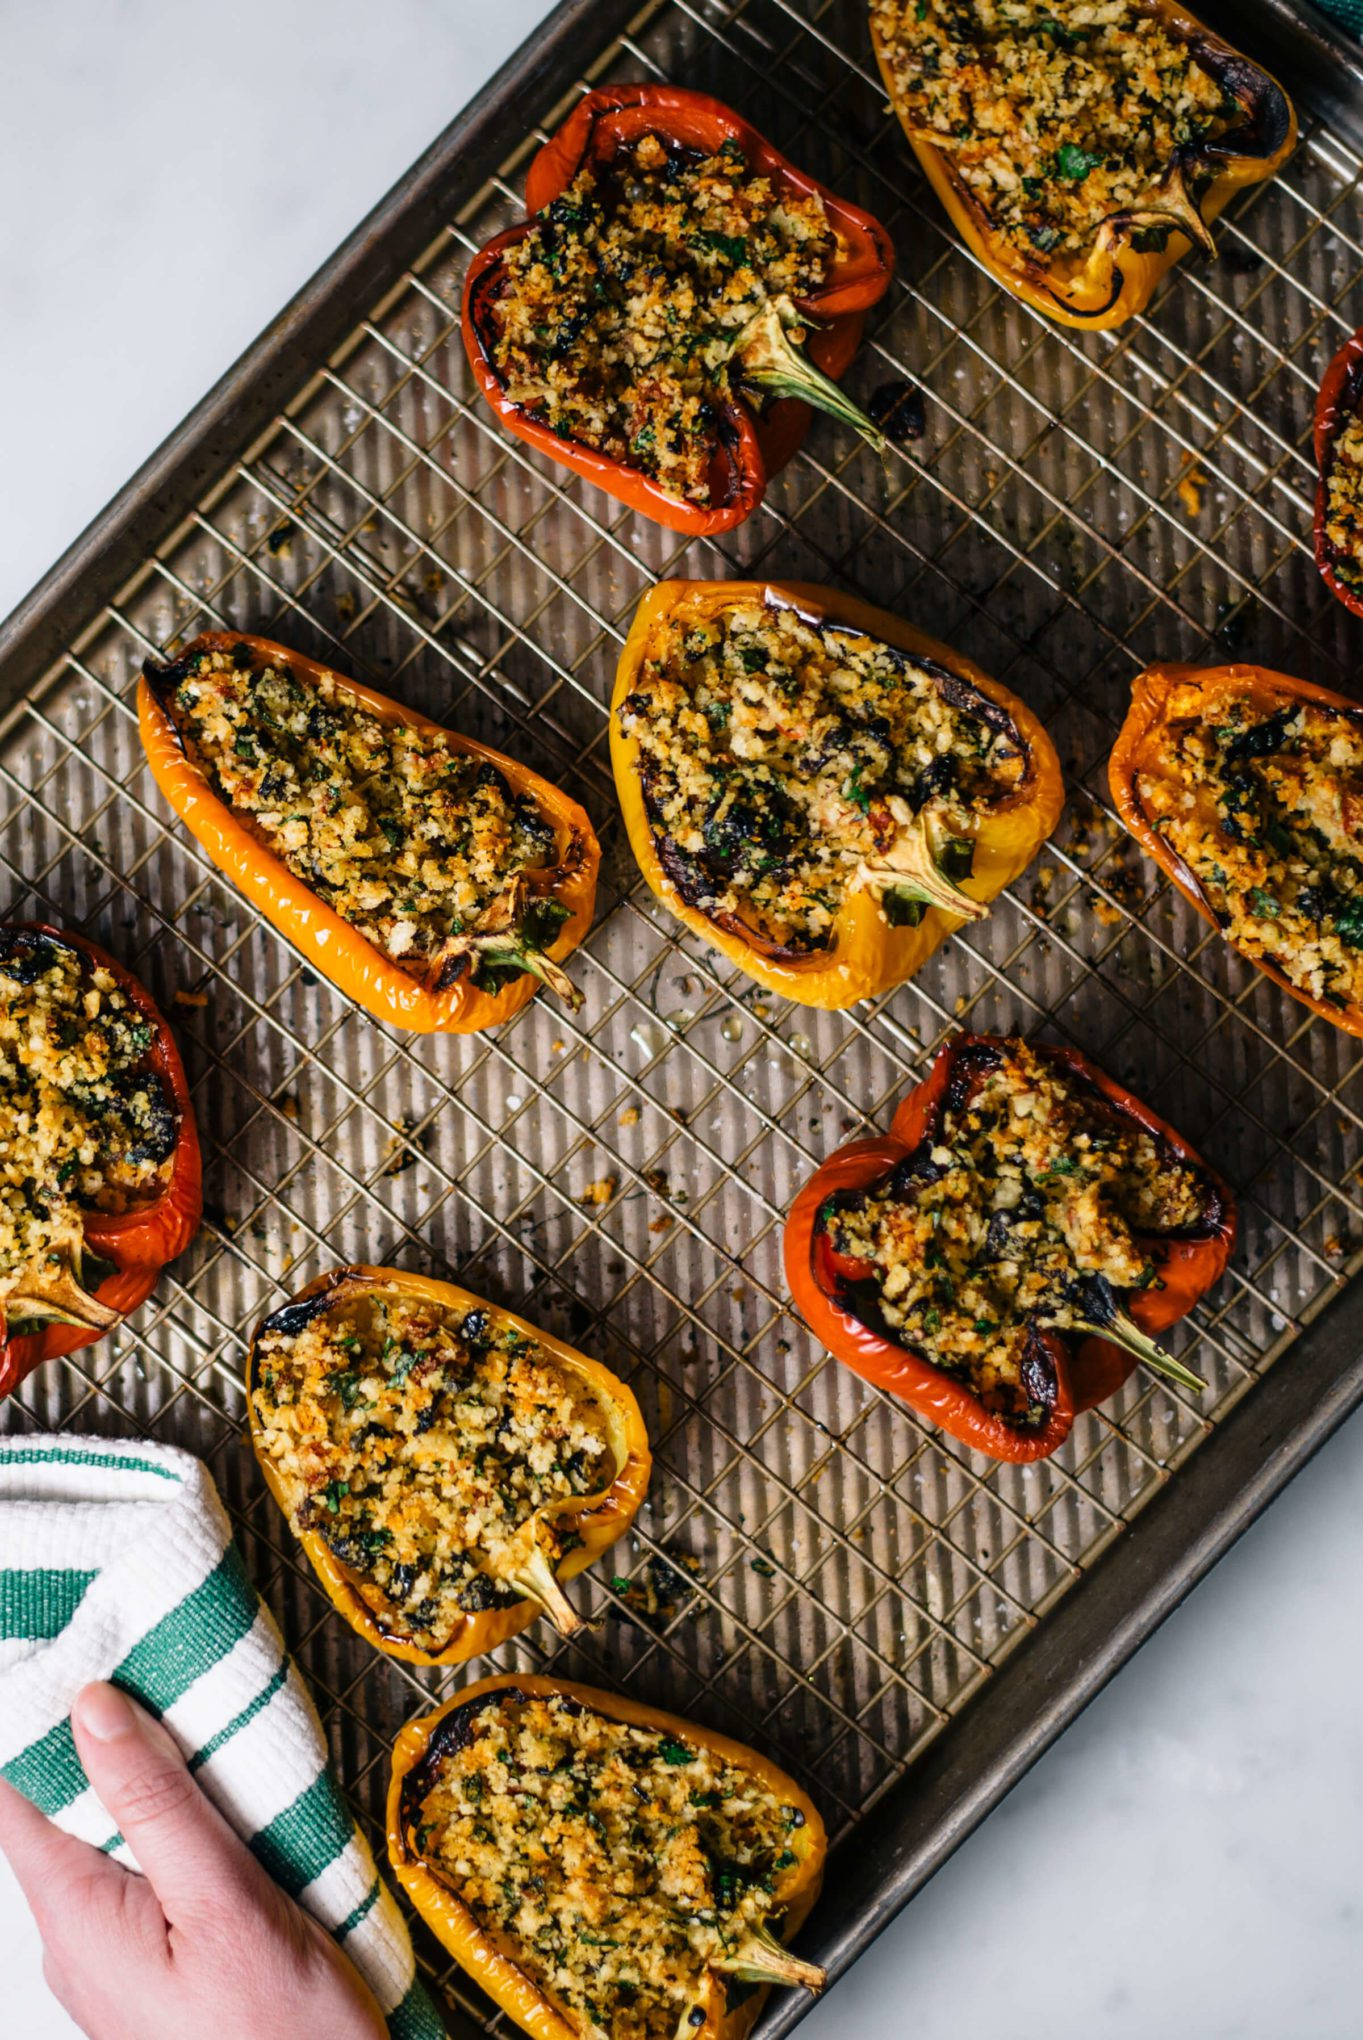 Baking these easy Italian stuffed peppers for a simple weeknight meal made with olives and anchovies by The Taste SF